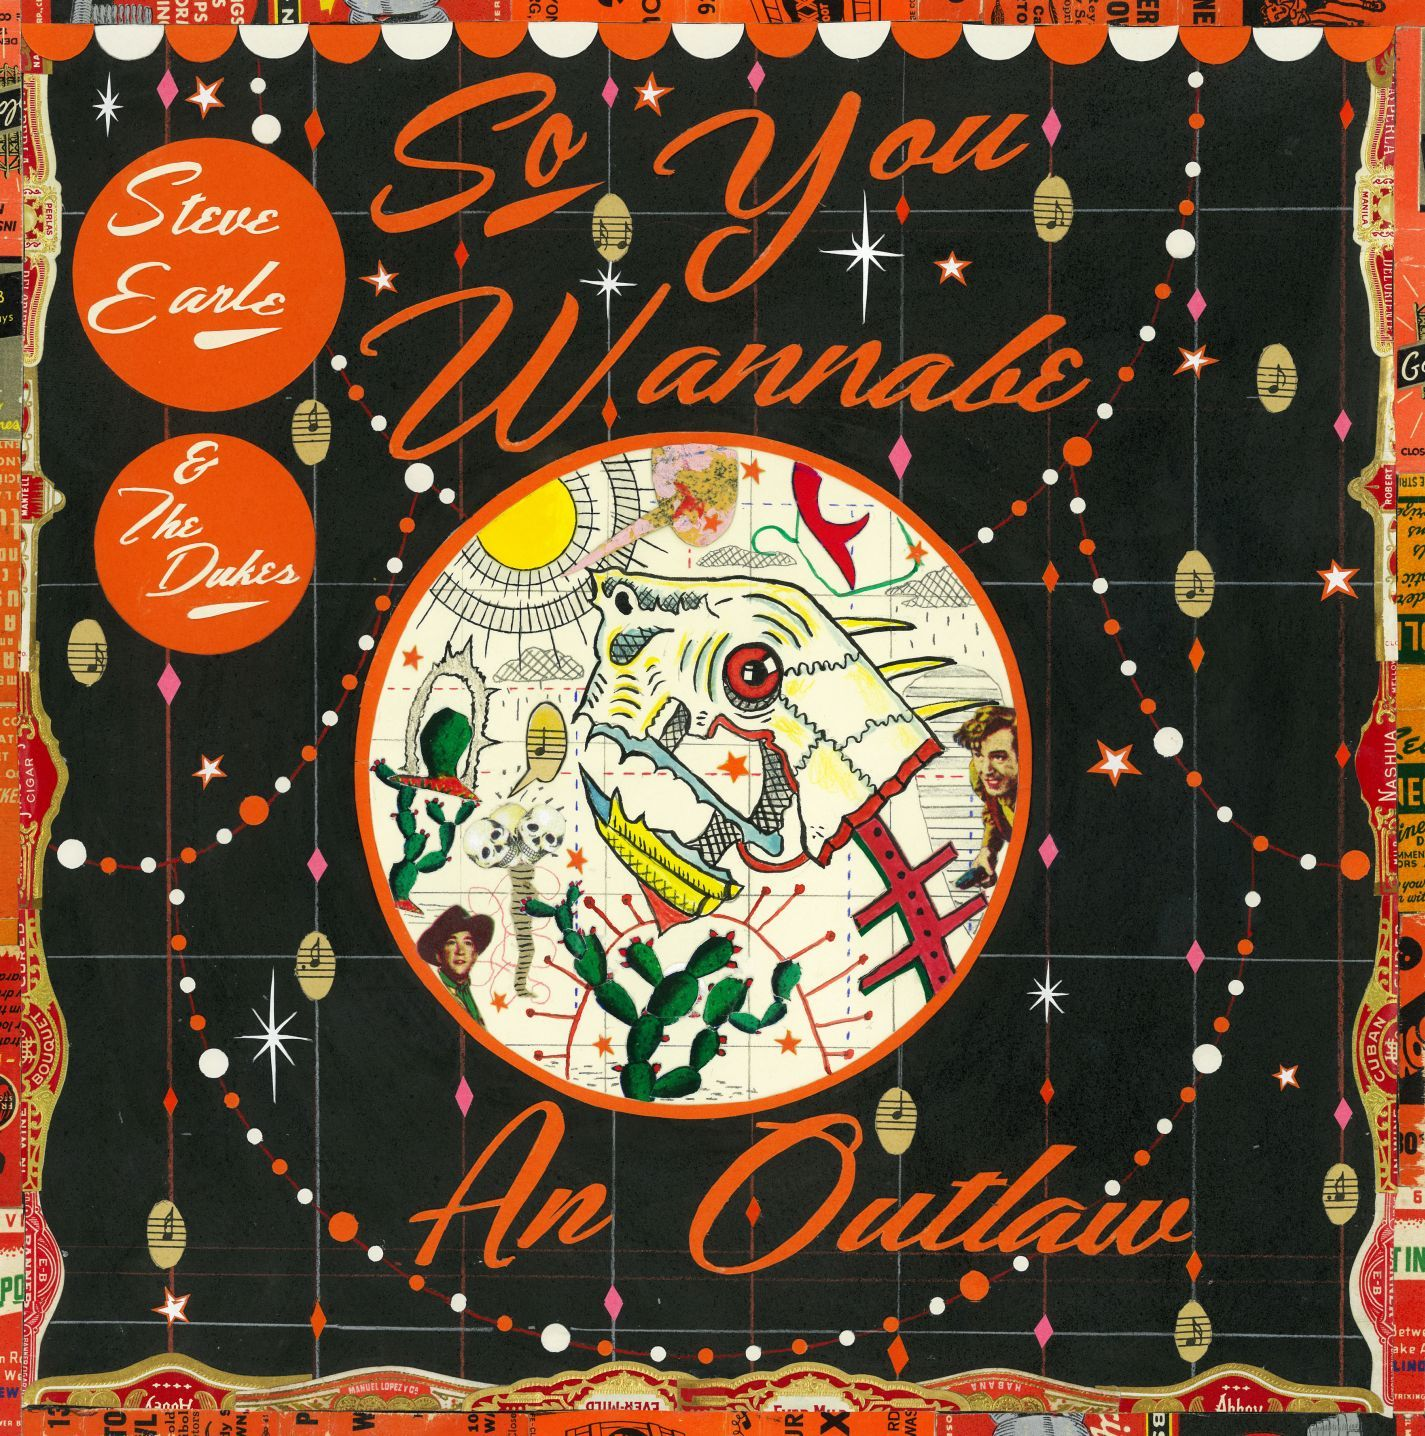 So You Wannabe An Outlaw (CD/DVD) by Steve Earle & The Dukes image